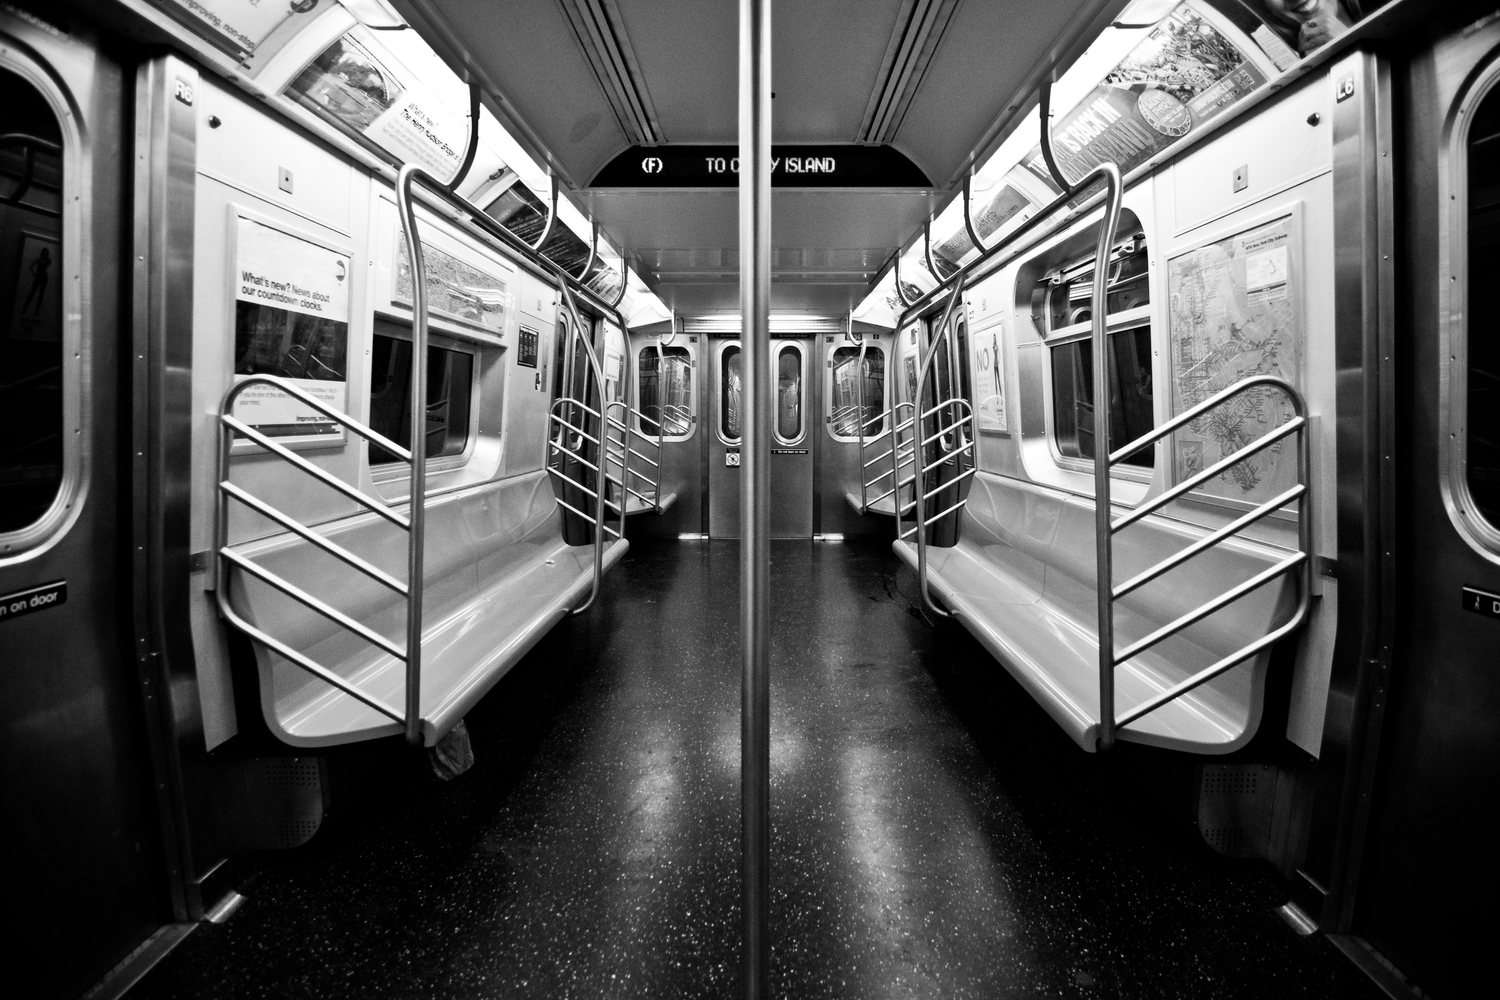 Modern Detachment   It was early in the morning, around 2AM. I just slept pass my stop by one freaking stop. I had to wait about 10 minutes in the freaking oven that is a MTA subway platform and was greeted by emptiness. I've always wanted to take a picture of an empty F train, and I finally got my chance.